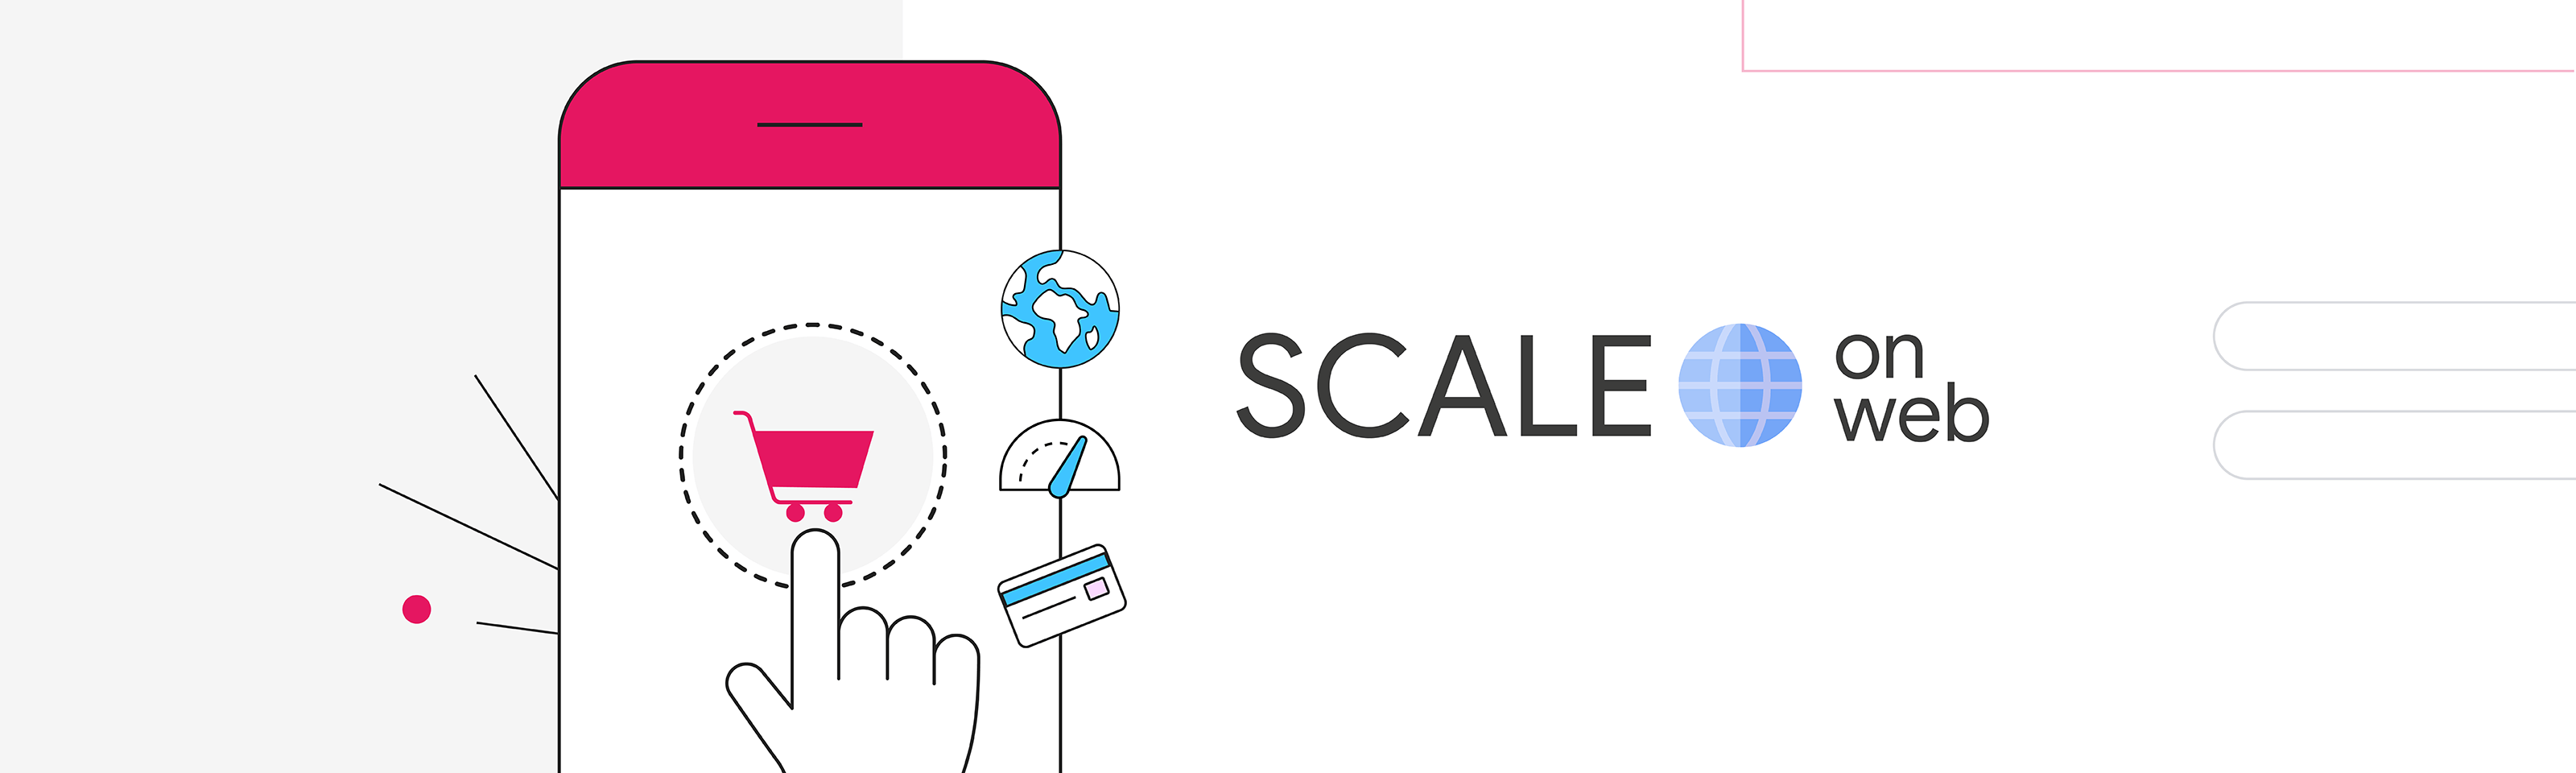 An illustration of an e-commerce app next to the text 'SCALE ON WEB'.